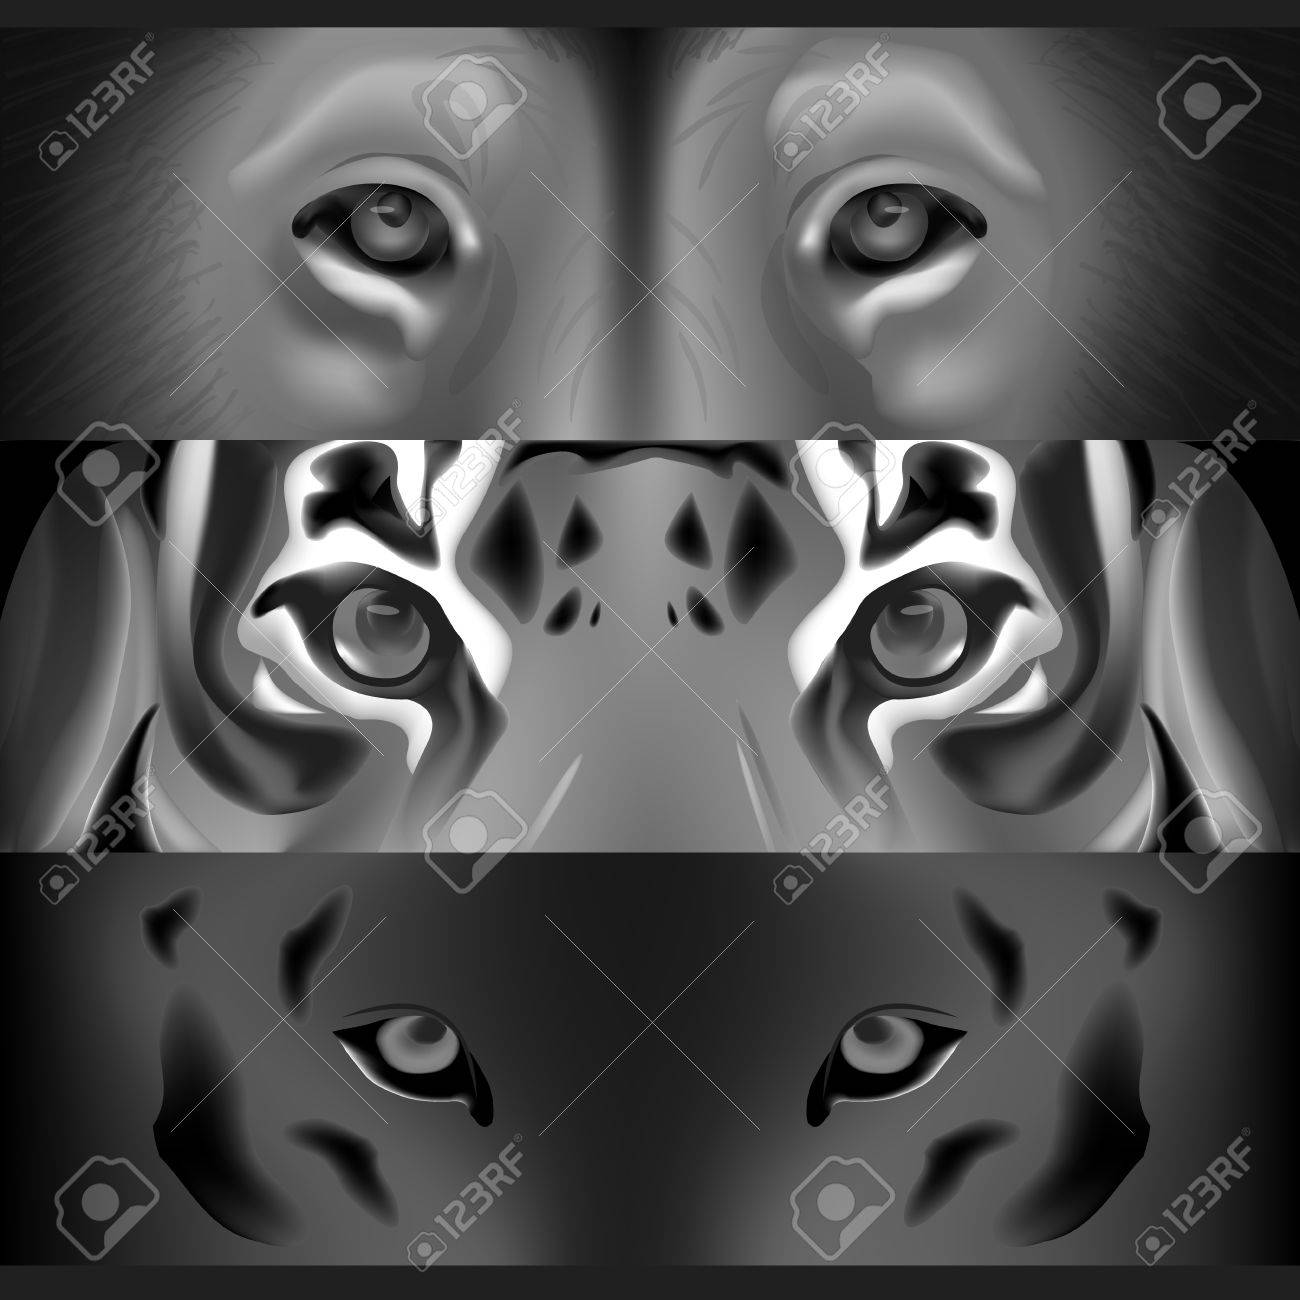 The Face Of A Tiger And A Lion Greyscale Royalty Free Cliparts Vectors And Stock Illustration Image 57525659